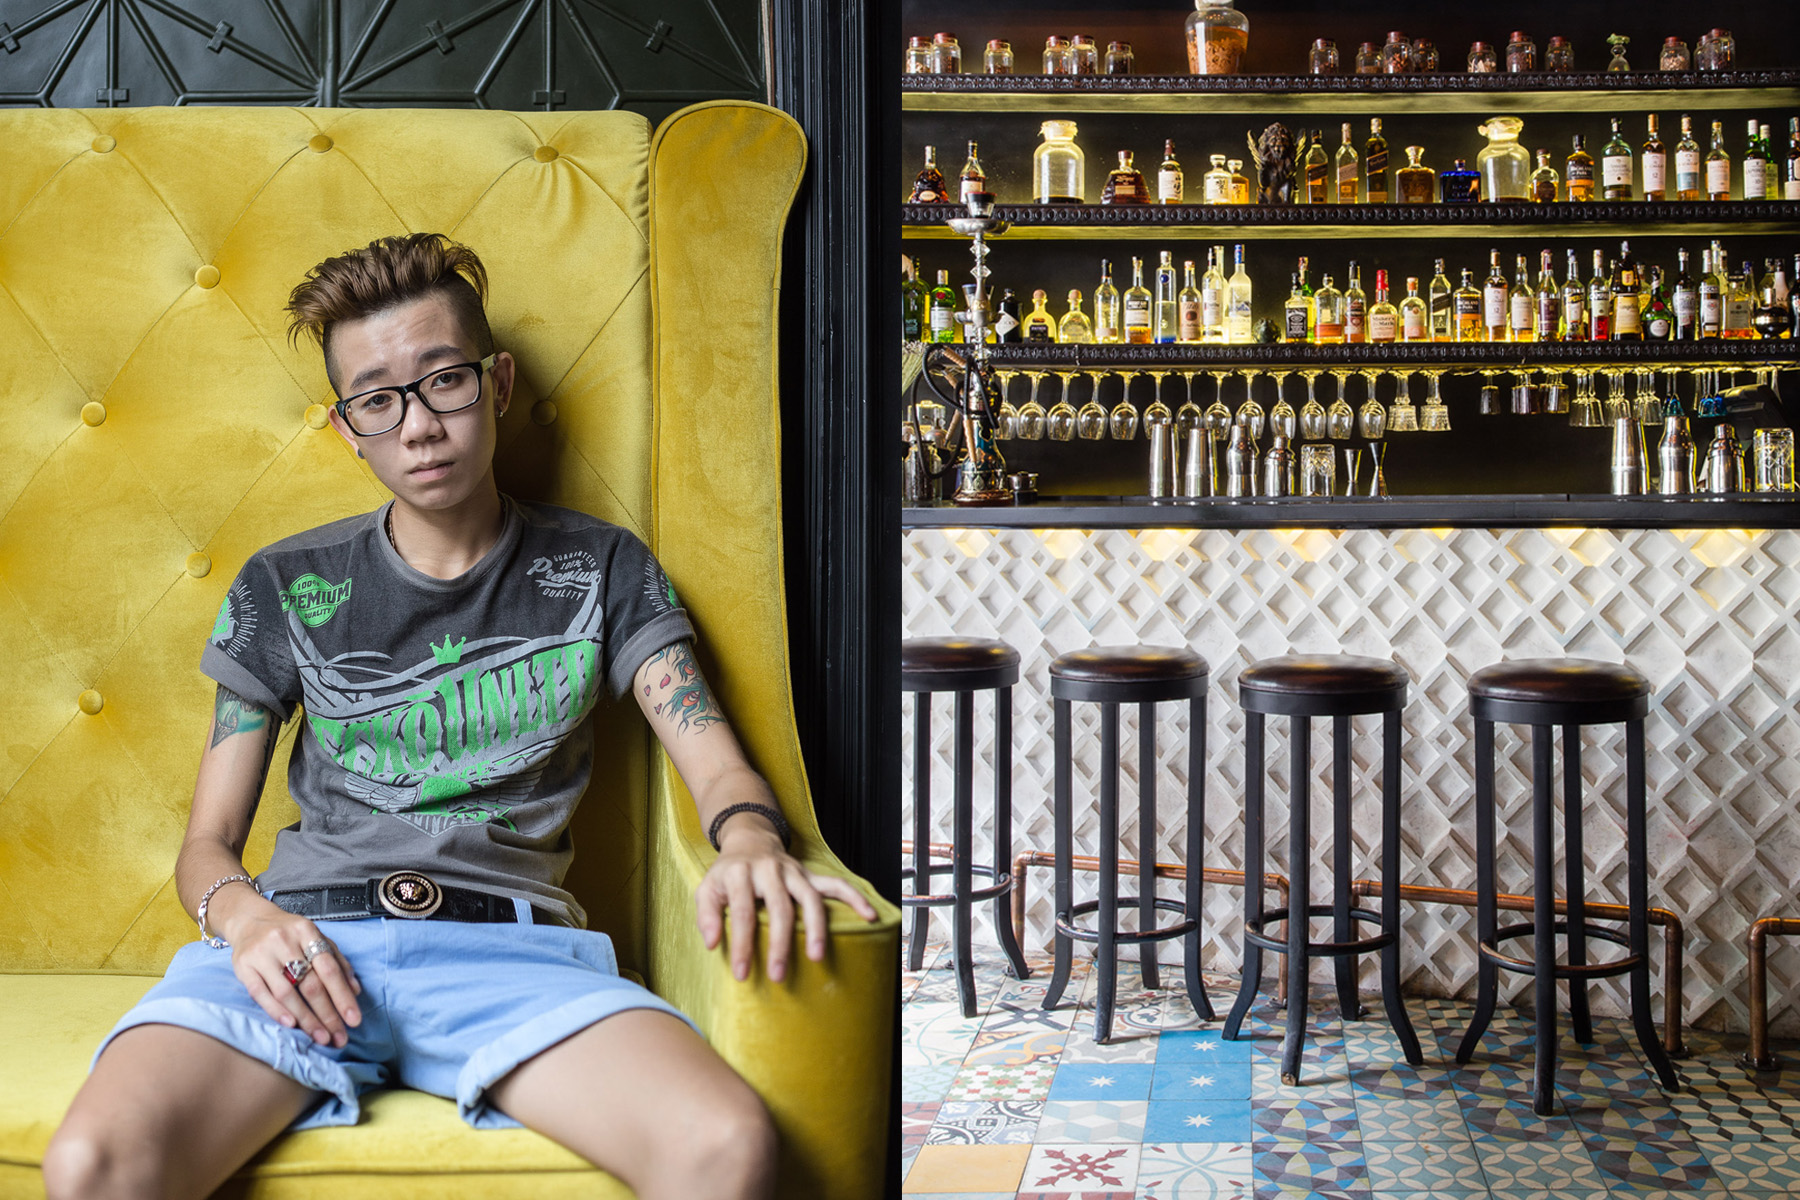 A patron enjoying the speak-easy-themed environs of Snuffbox, a sophisticated nightclub in 14 Ton That Dam Street, District 1, Ho Chi Minh City, Vietnam.